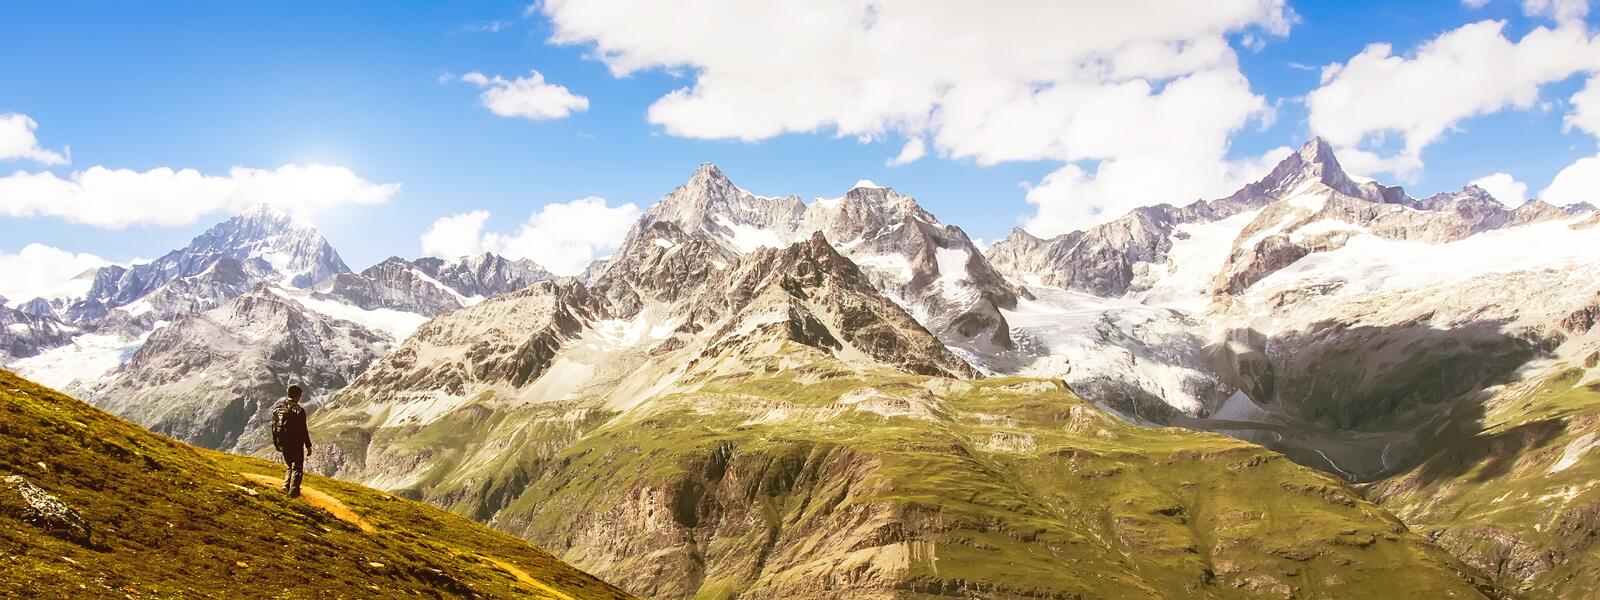 Alone traveler standing at Matterhorn peak in panorama view, Switzerland. Adventure Life travel concept. royalty free stock images